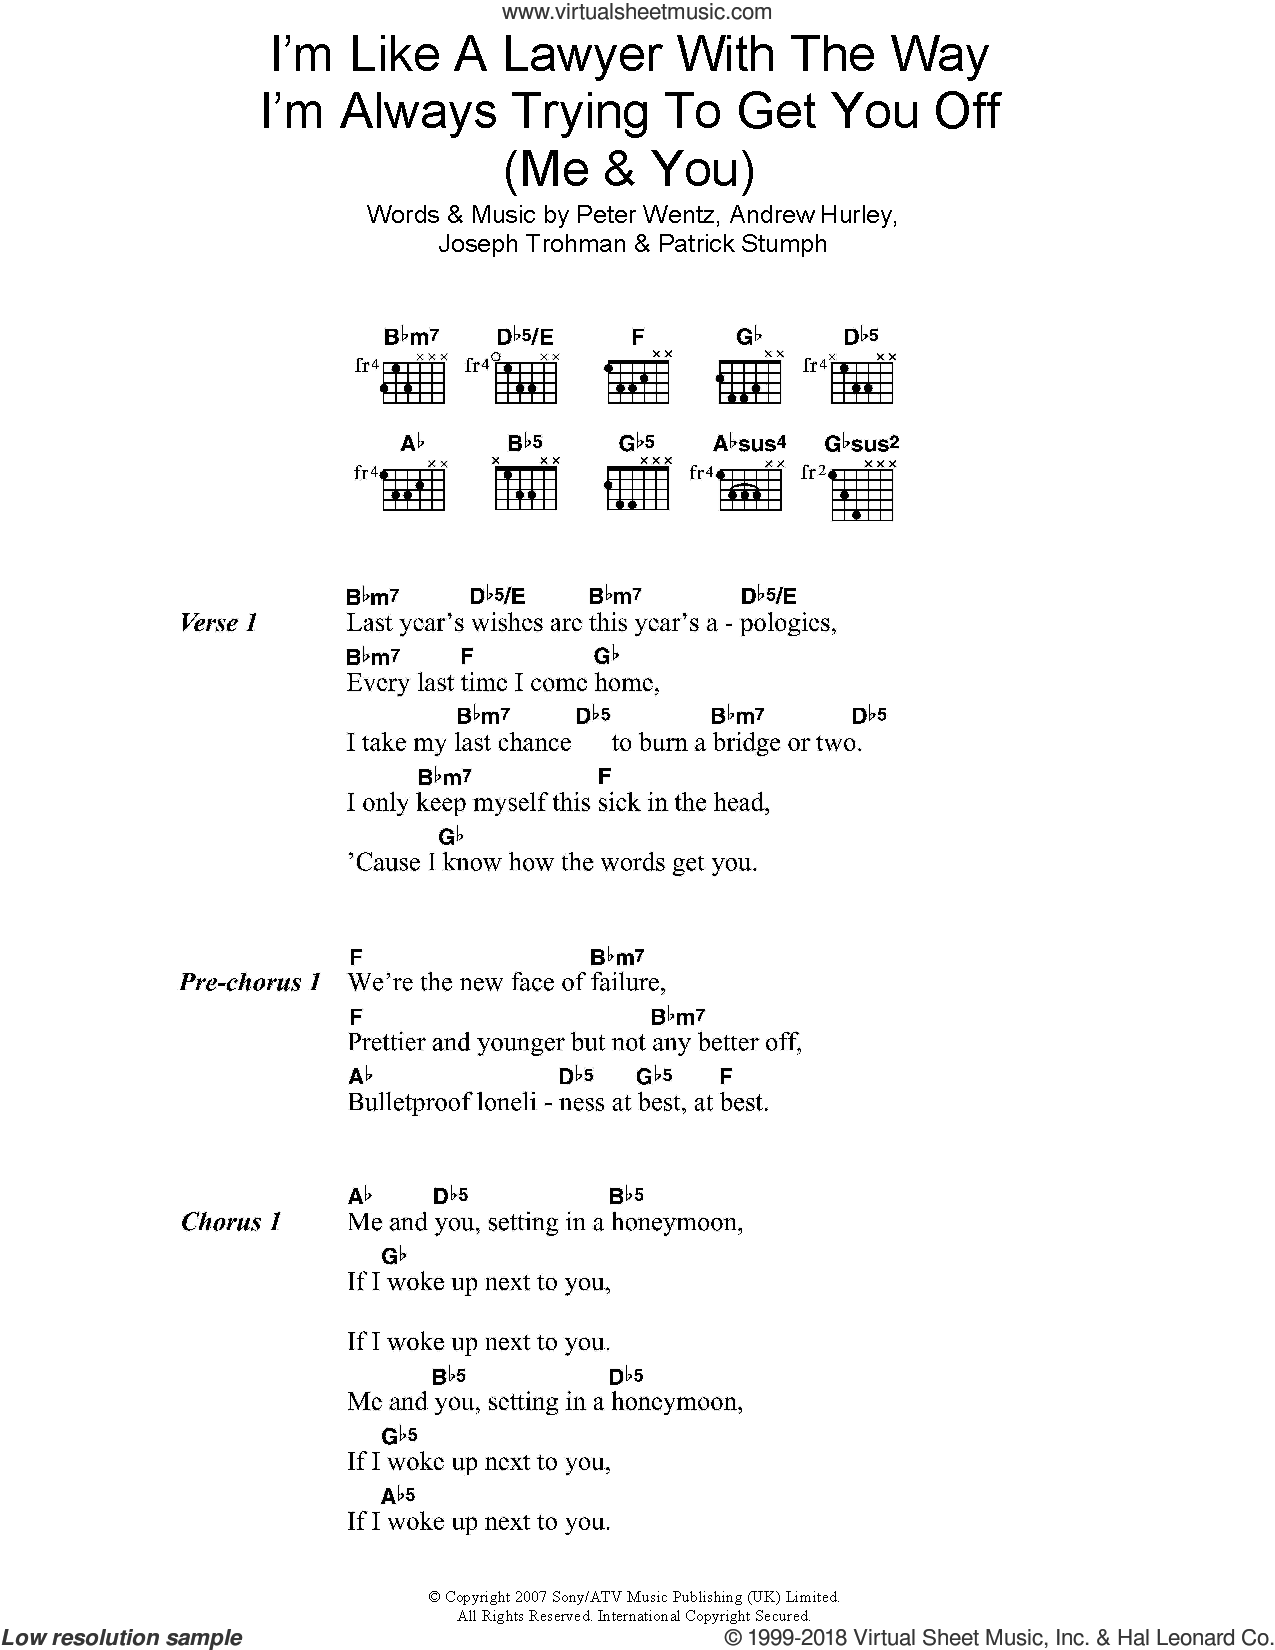 I'm Like A Lawyer With The Way I'm Always Trying To Get You Off (Me and You) sheet music for guitar (chords) by Fall Out Boy, Andrew Hurley, Joseph Trohman, Patrick Stumph and Peter Wentz, intermediate skill level